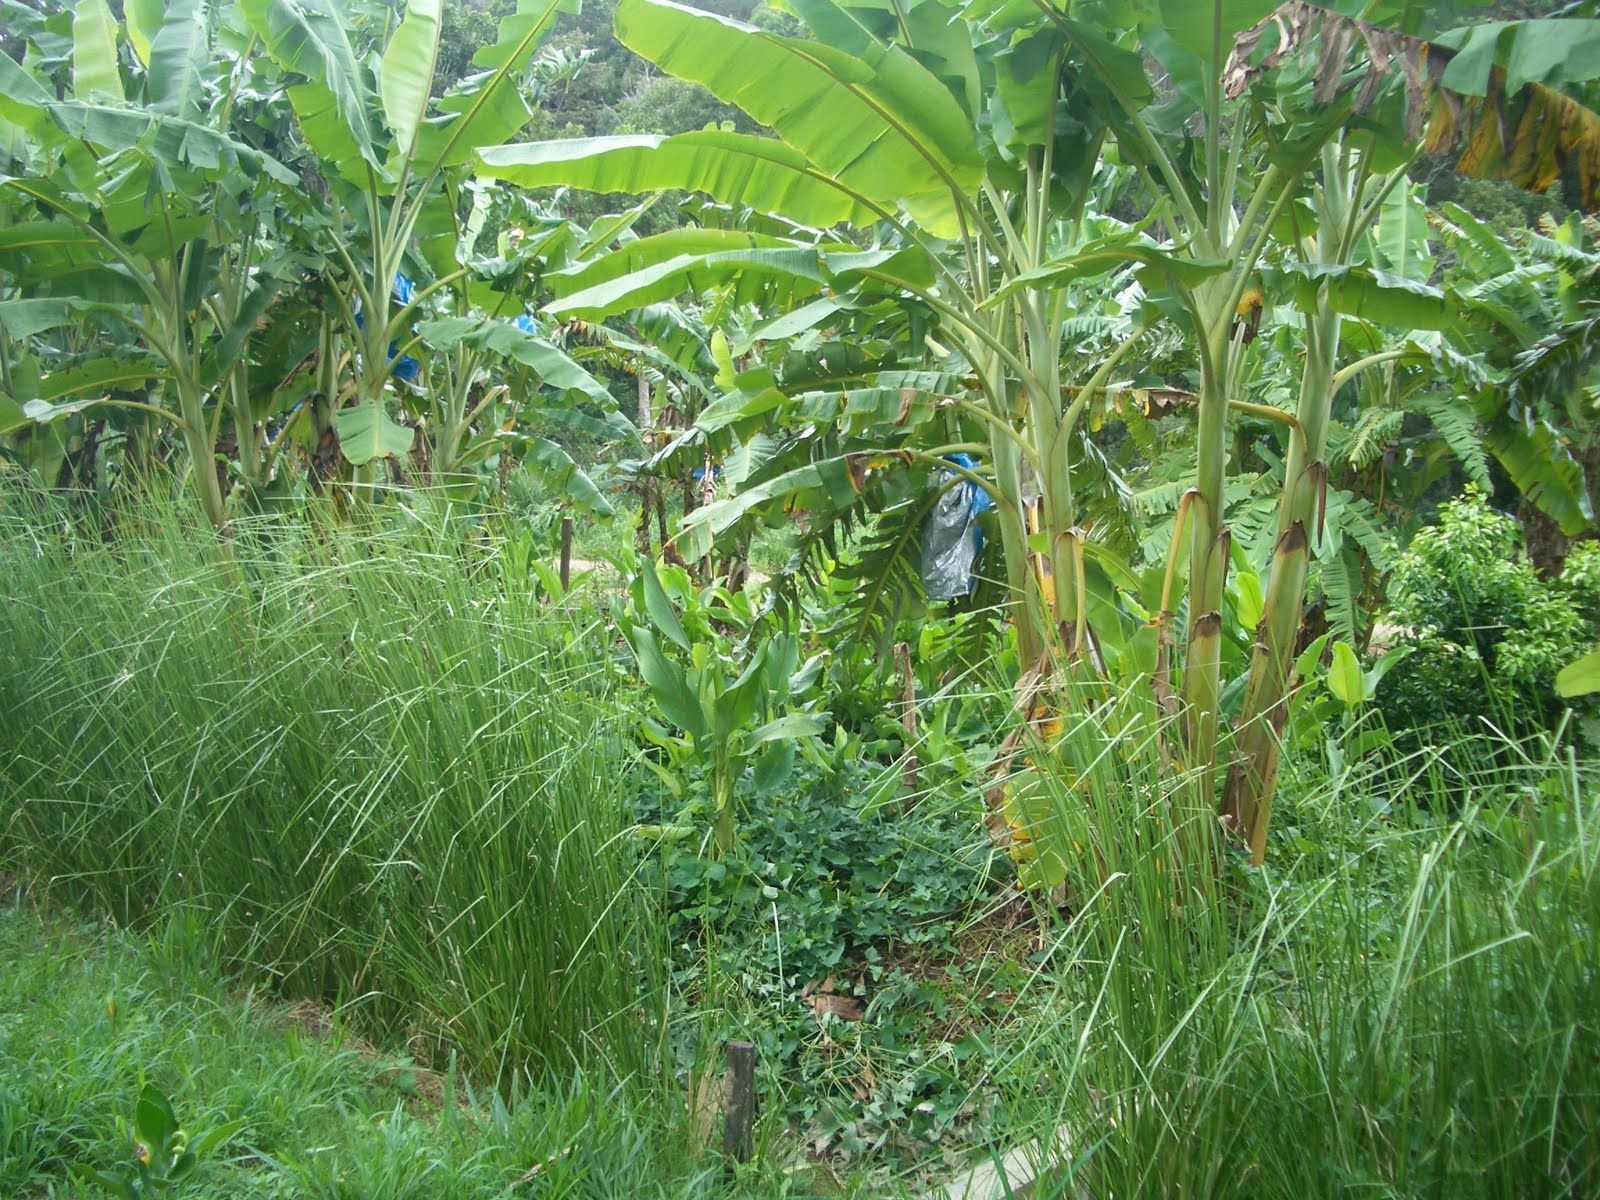 Establishing a permaculture food forest by using biological resources, to increase self reliance.